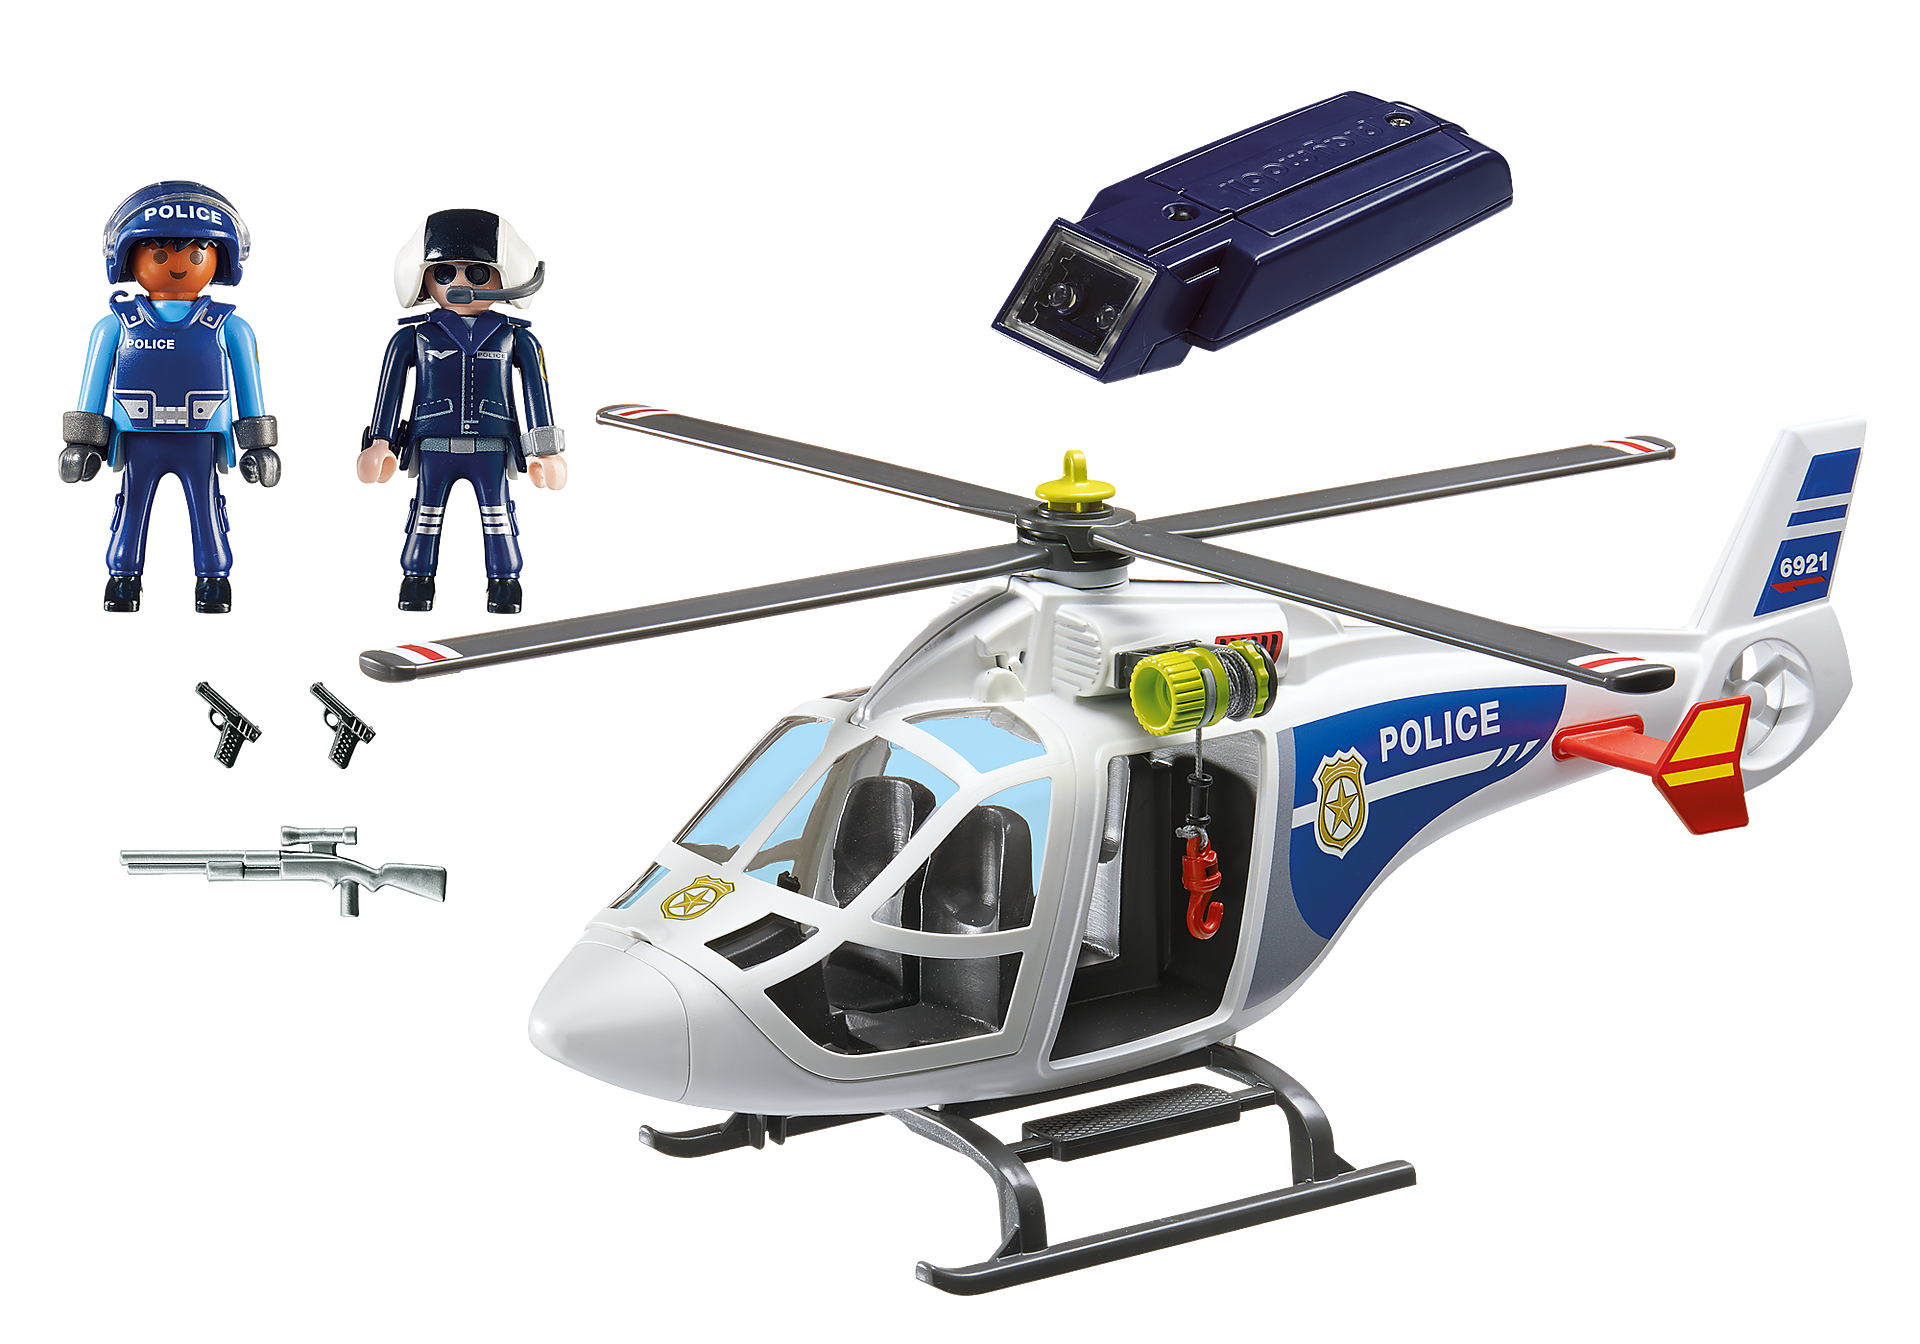 http://media.playmobil.com/i/playmobil/6921_product_box_back/Helicóptero de Policía con Luces LED